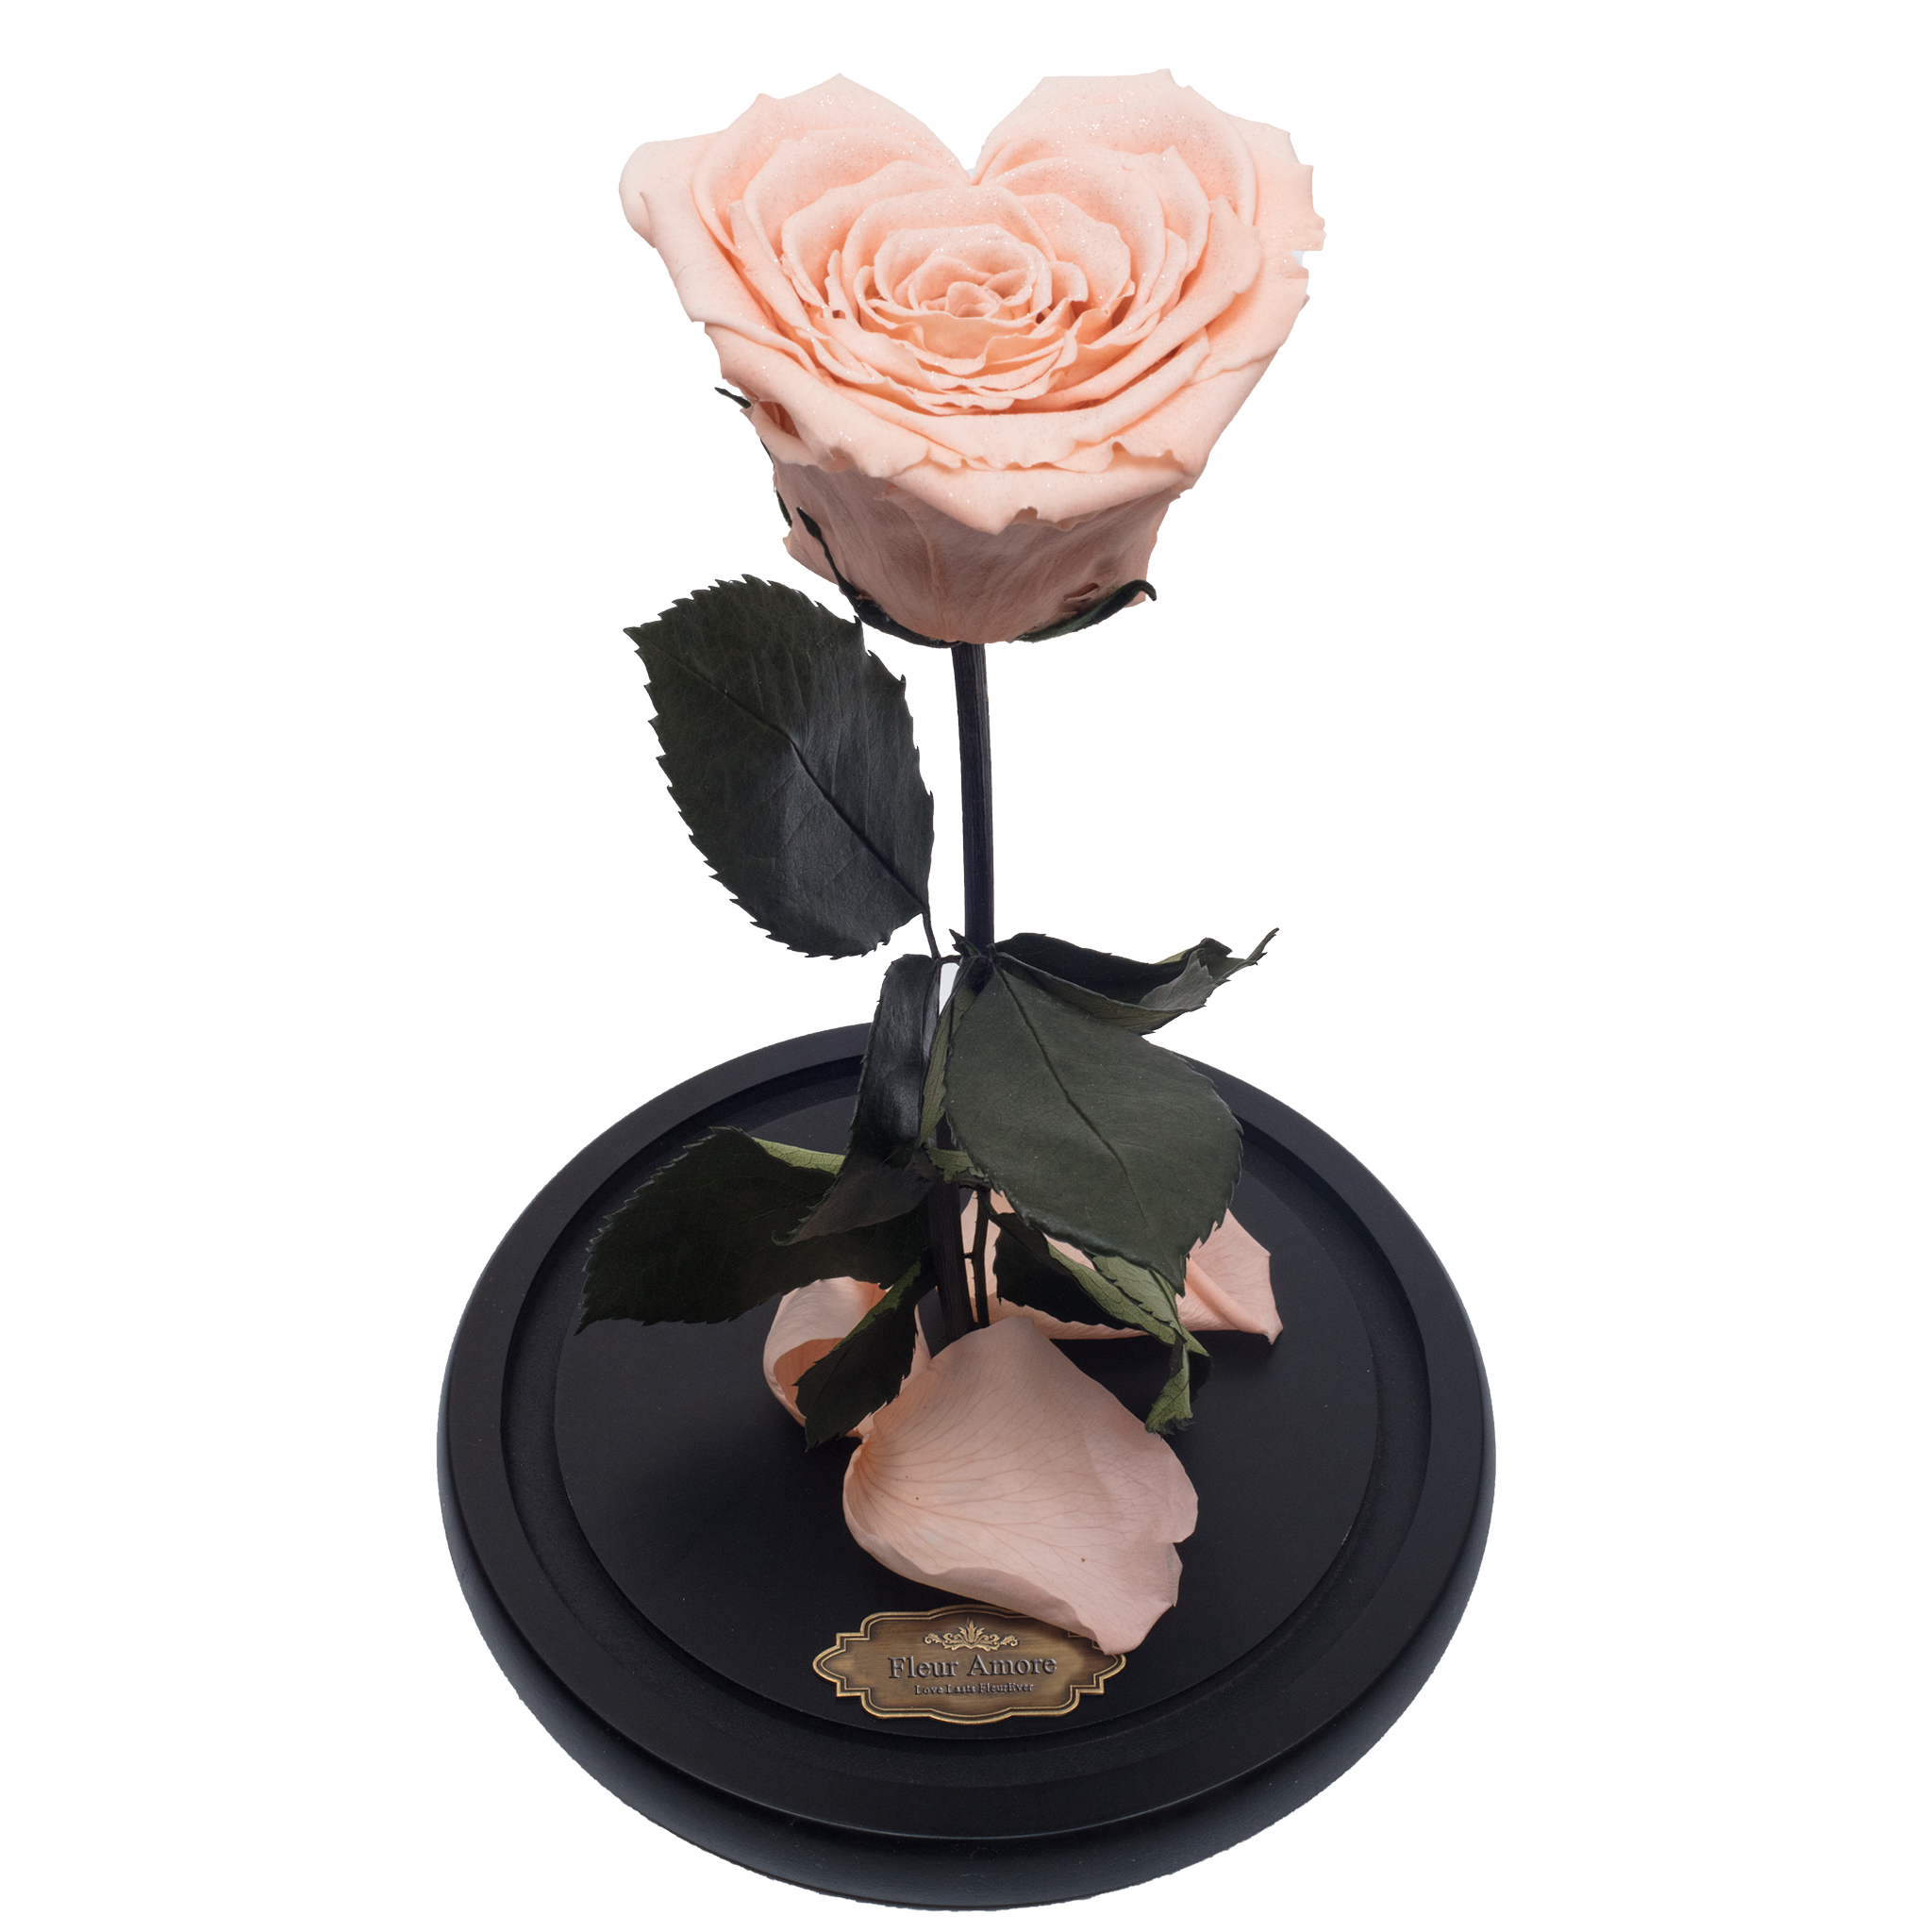 Peach with crystal dust heart shape preserved rose beauty and the peach with crystal dust heart shape preserved rose beauty and the beast glass dome izmirmasajfo